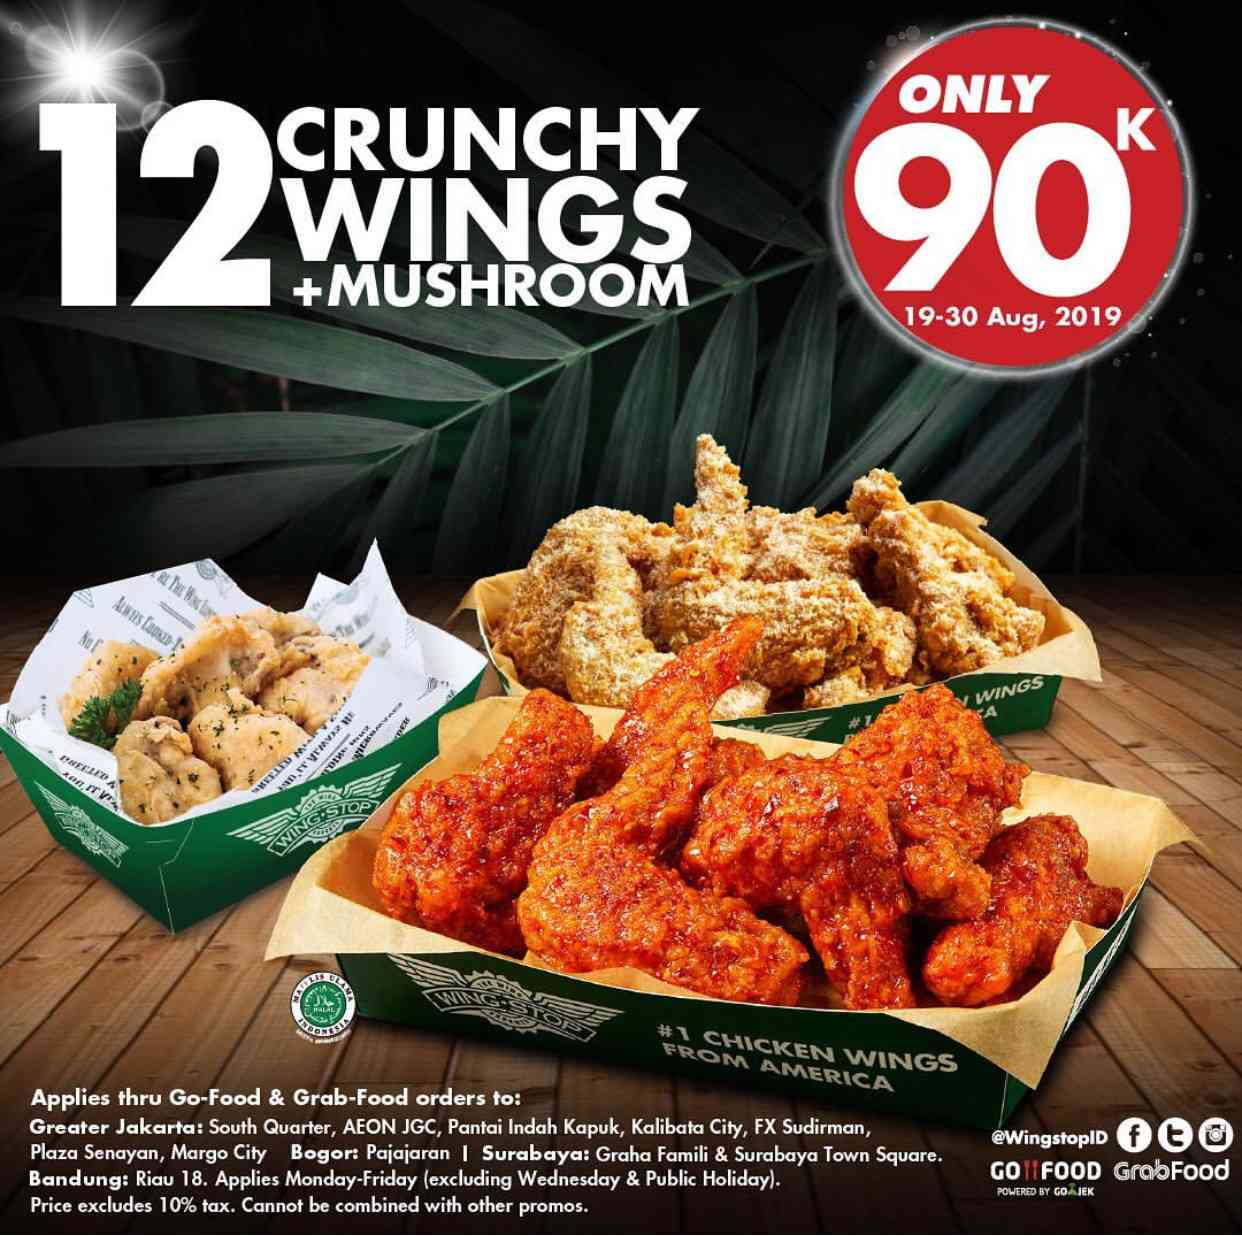 Wingstop Get 12 Crunchy Wings + Mushroom Fritters For Only 90K!